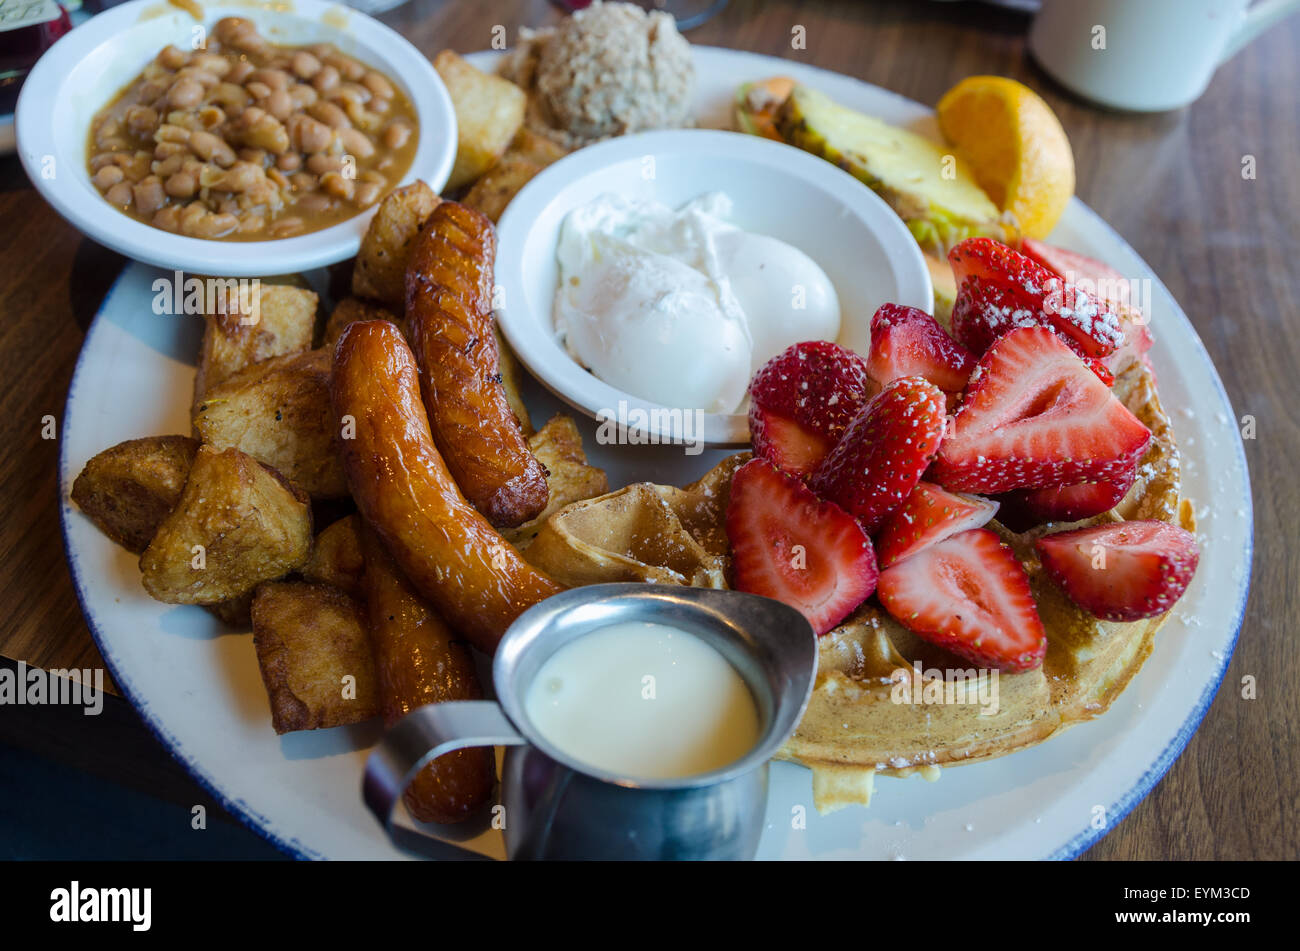 Typical canadian / american brunch - Stock Image